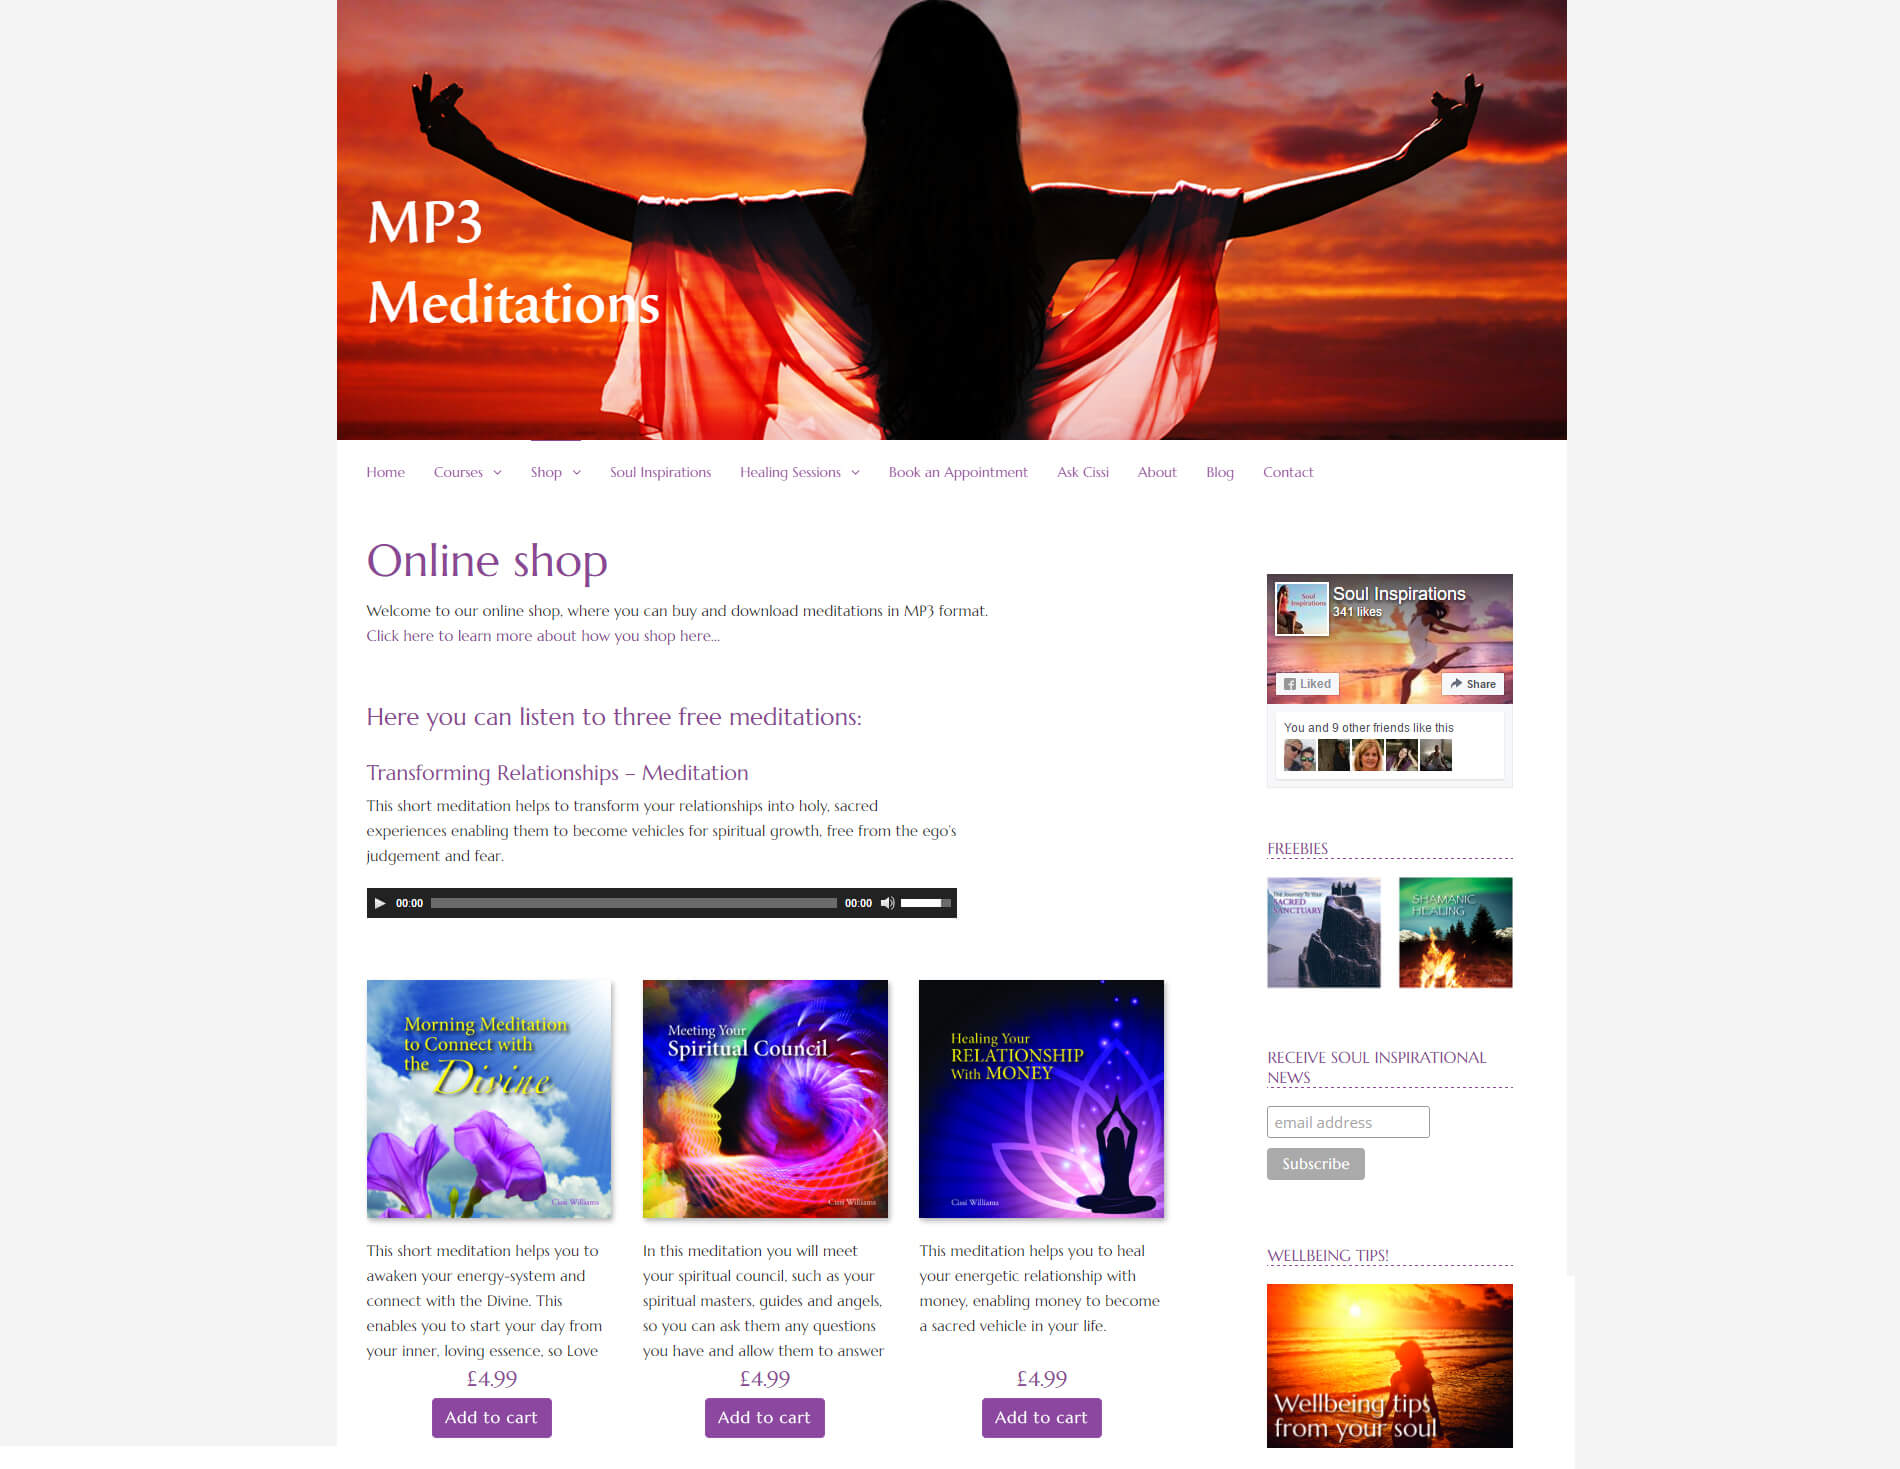 anweb Web design Webshop Soul Inspirations